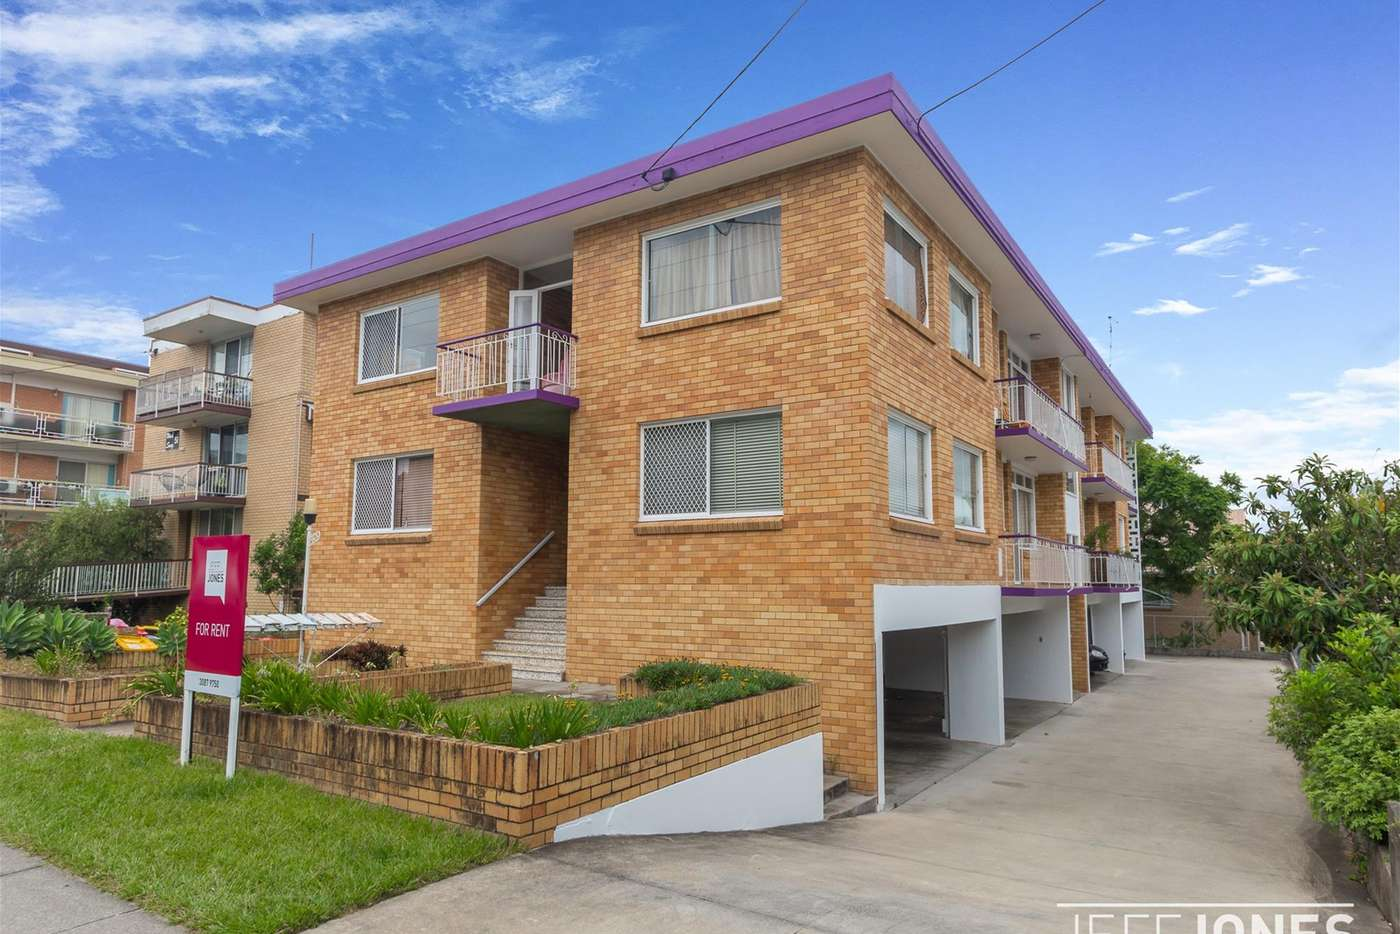 Main view of Homely unit listing, 1/49 Rialto Street, Coorparoo QLD 4151